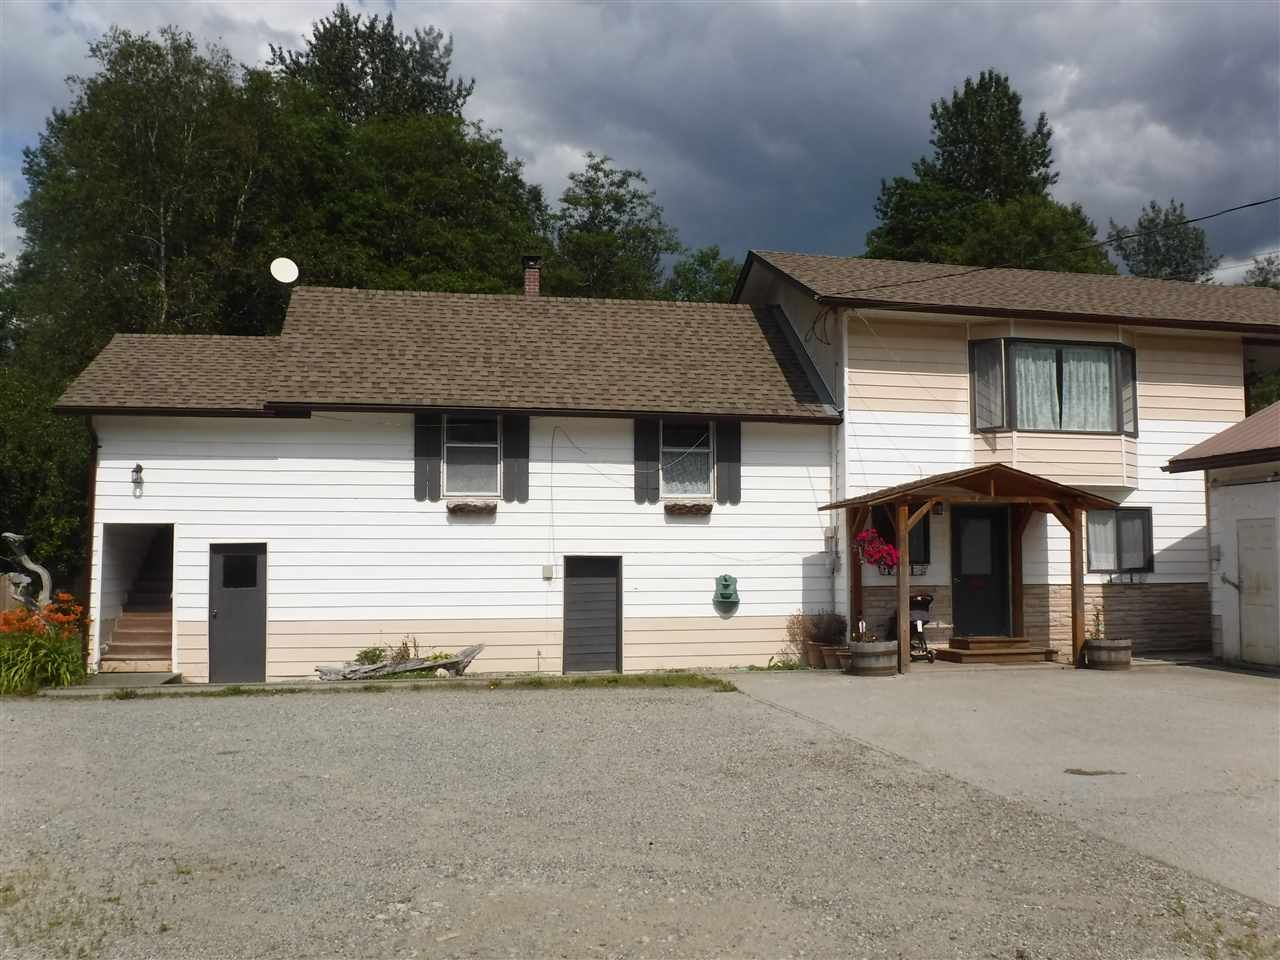 Photo 1: Photos: 1621 MACKENZIEY 20 Highway in Bella Coola: Bella Coola/Hagensborg House for sale (Williams Lake (Zone 27))  : MLS®# R2386428